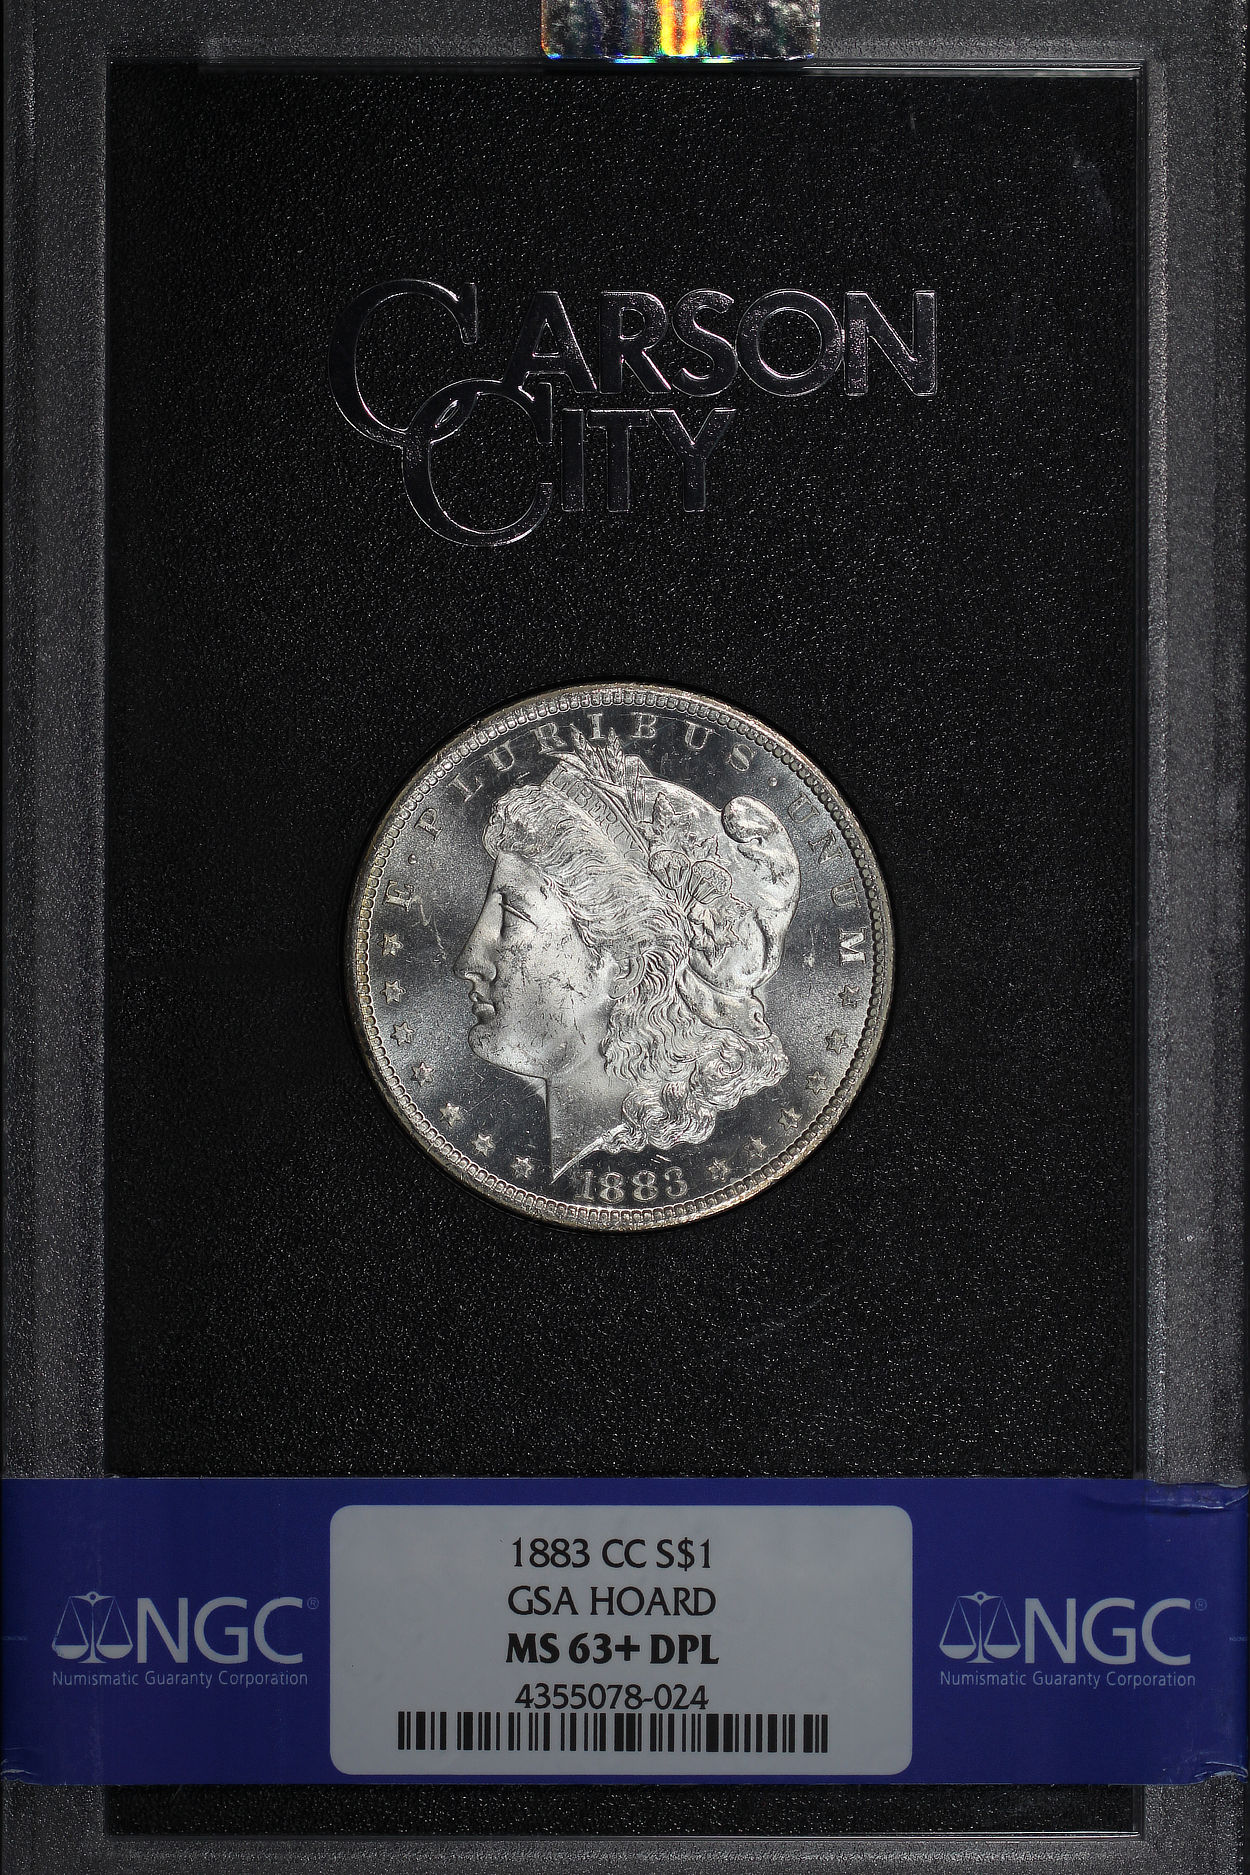 Obverse of 1883-CC GSA Morgan Dollar NGC MS-63 + DPL